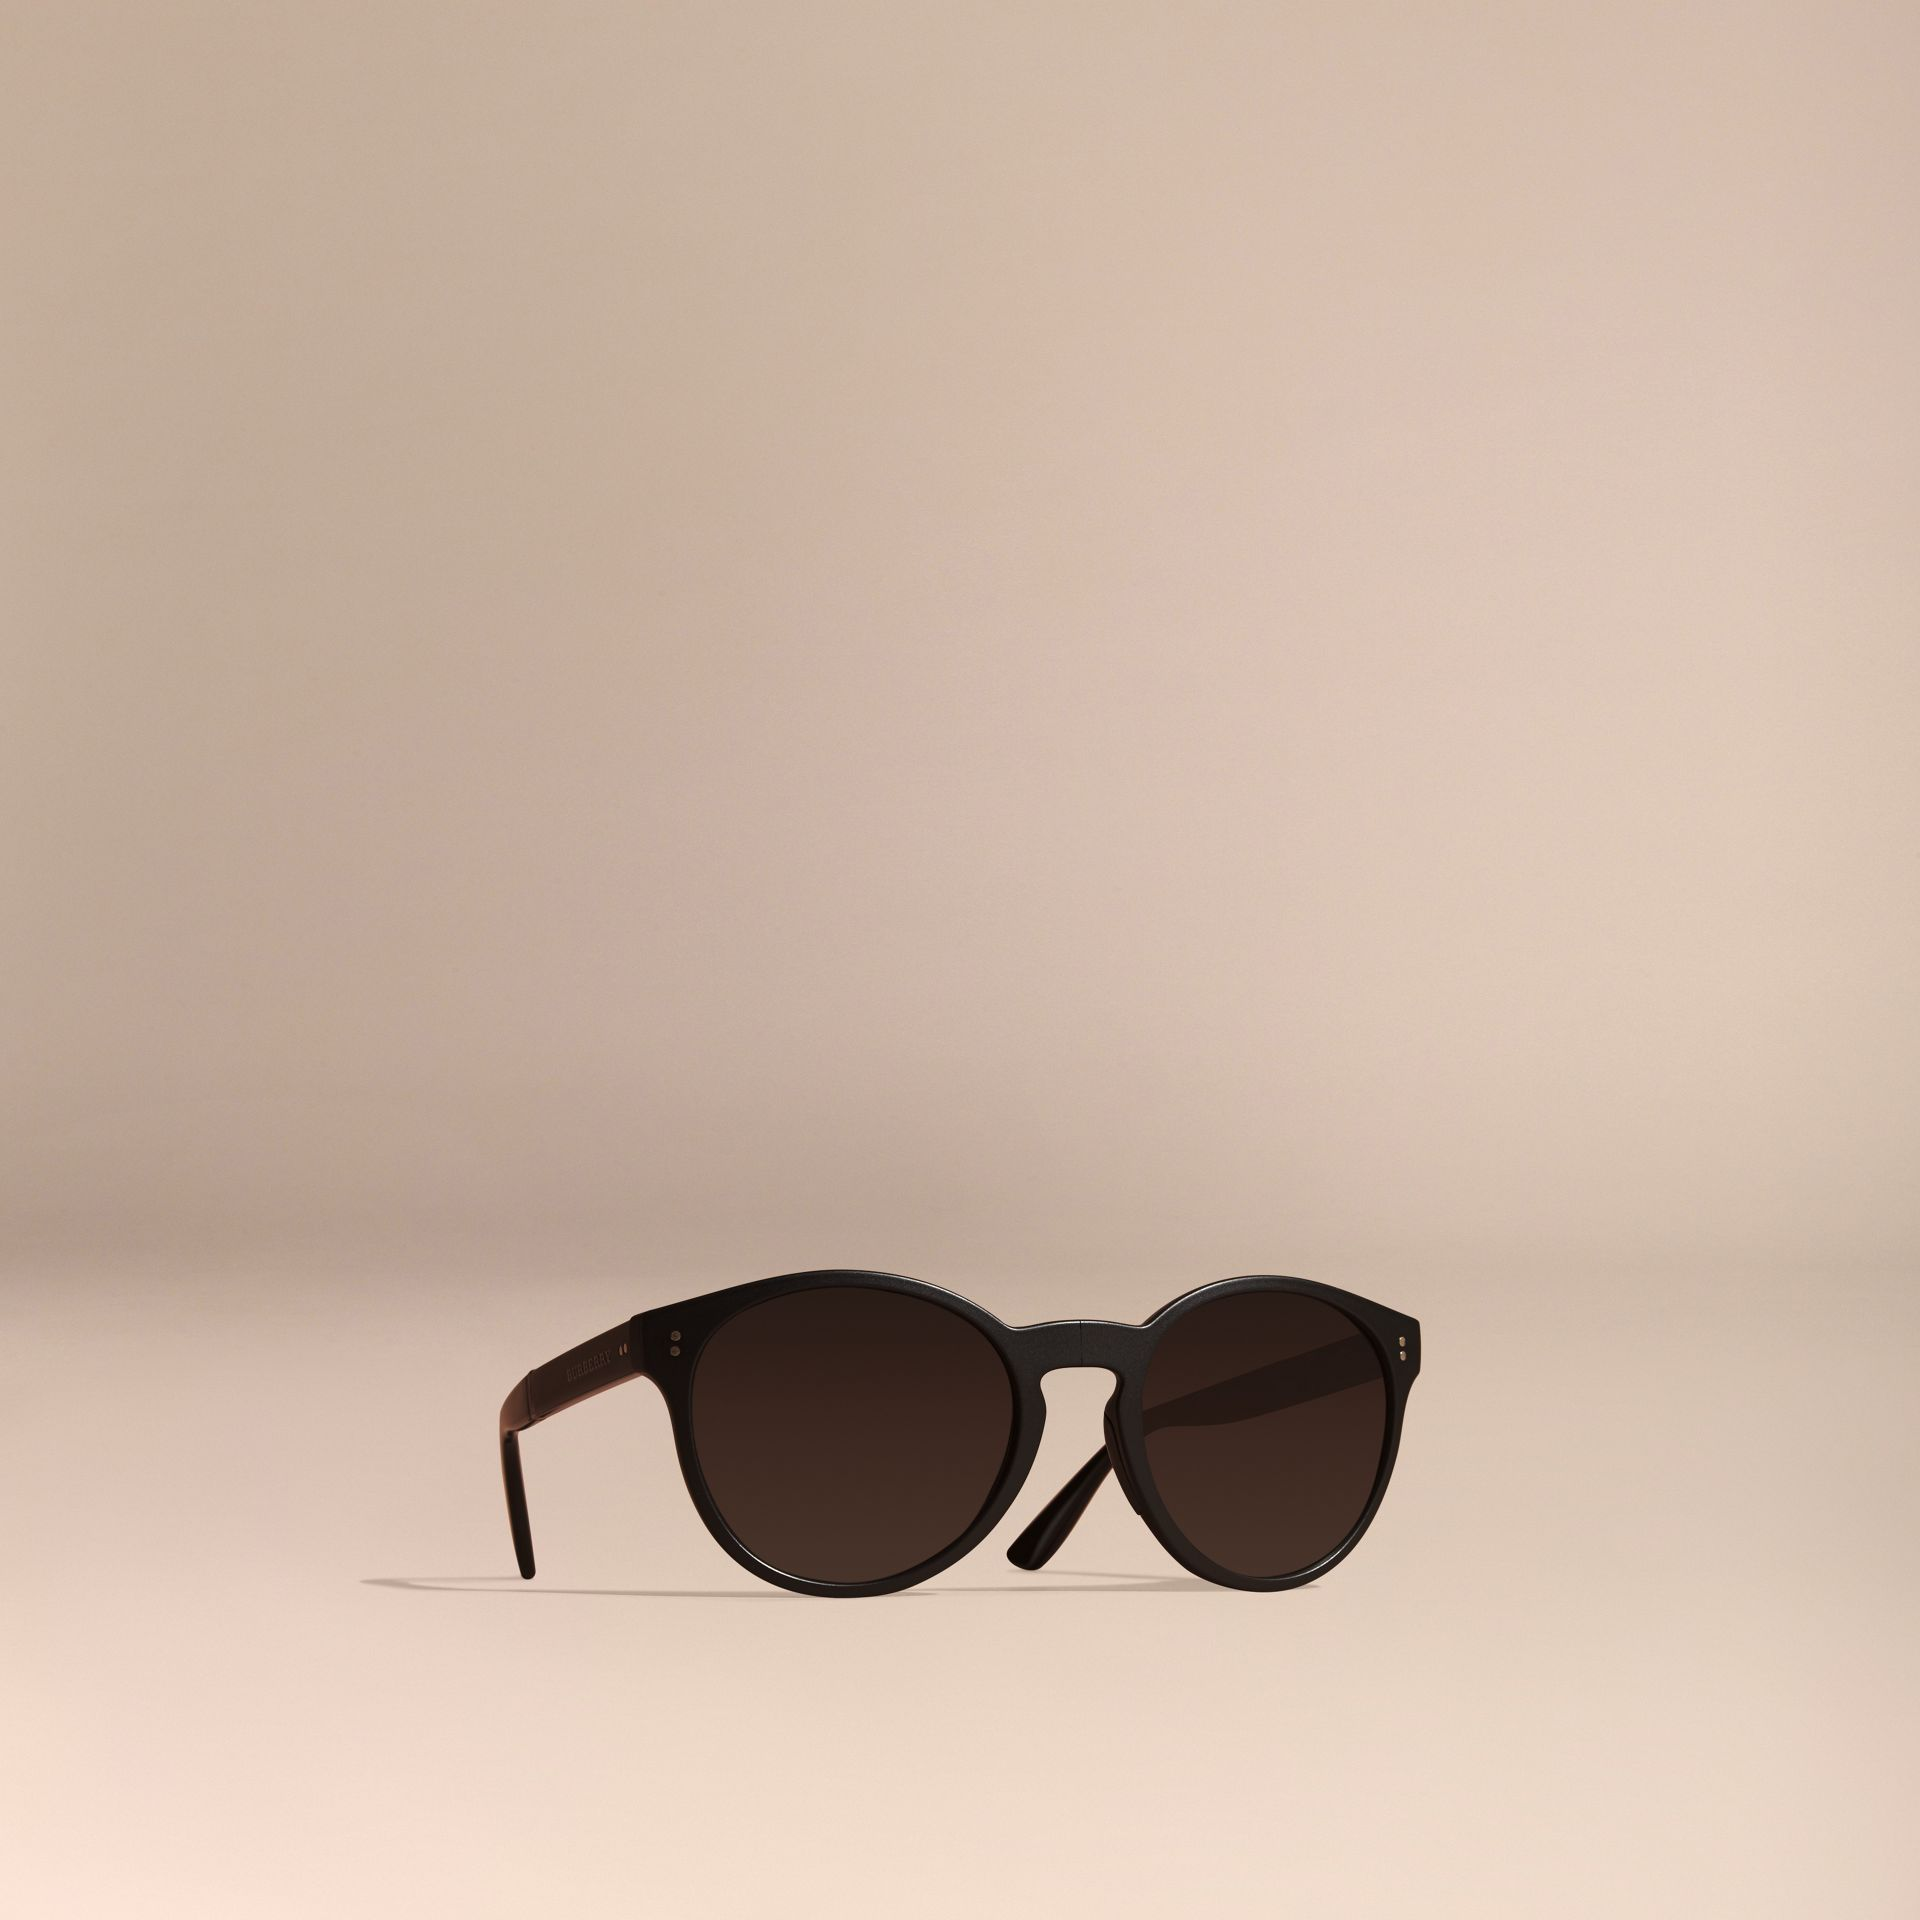 Folding Round Frame Sunglasses in Black - gallery image 1